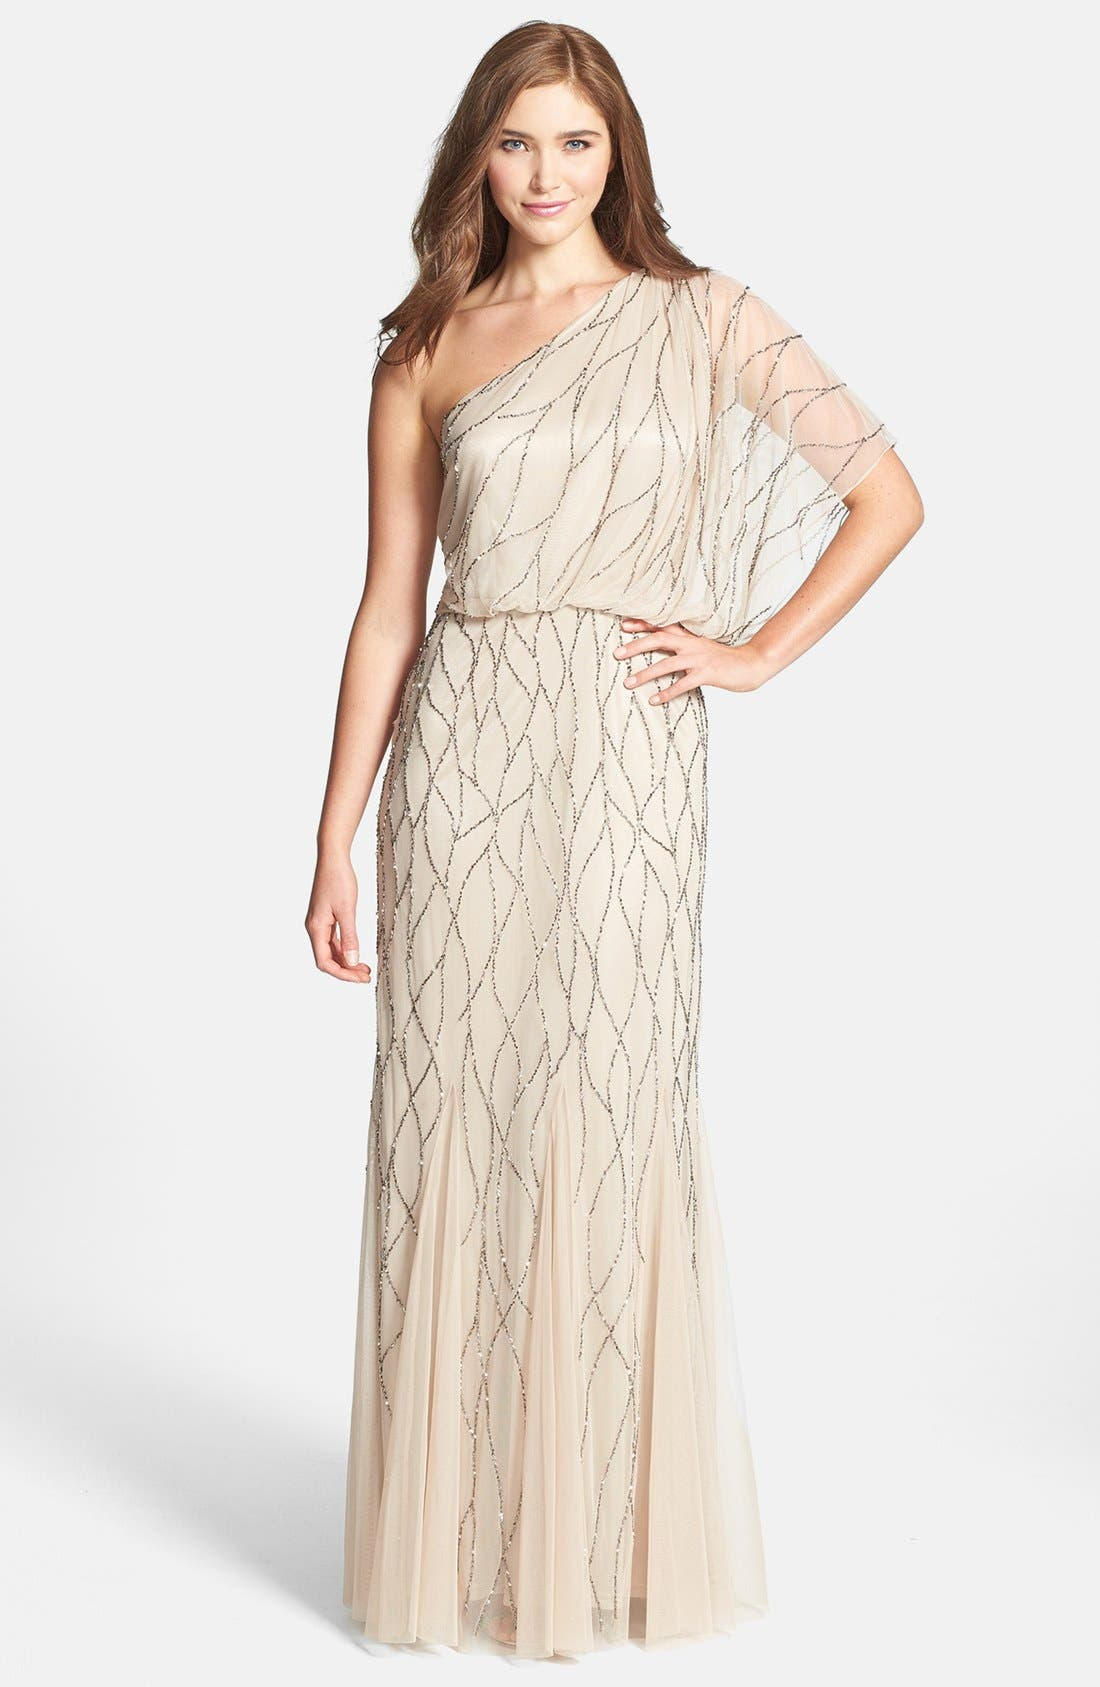 Alternate Image 1 Selected - Adrianna Papell Beaded One-Shoulder Blouson Dress